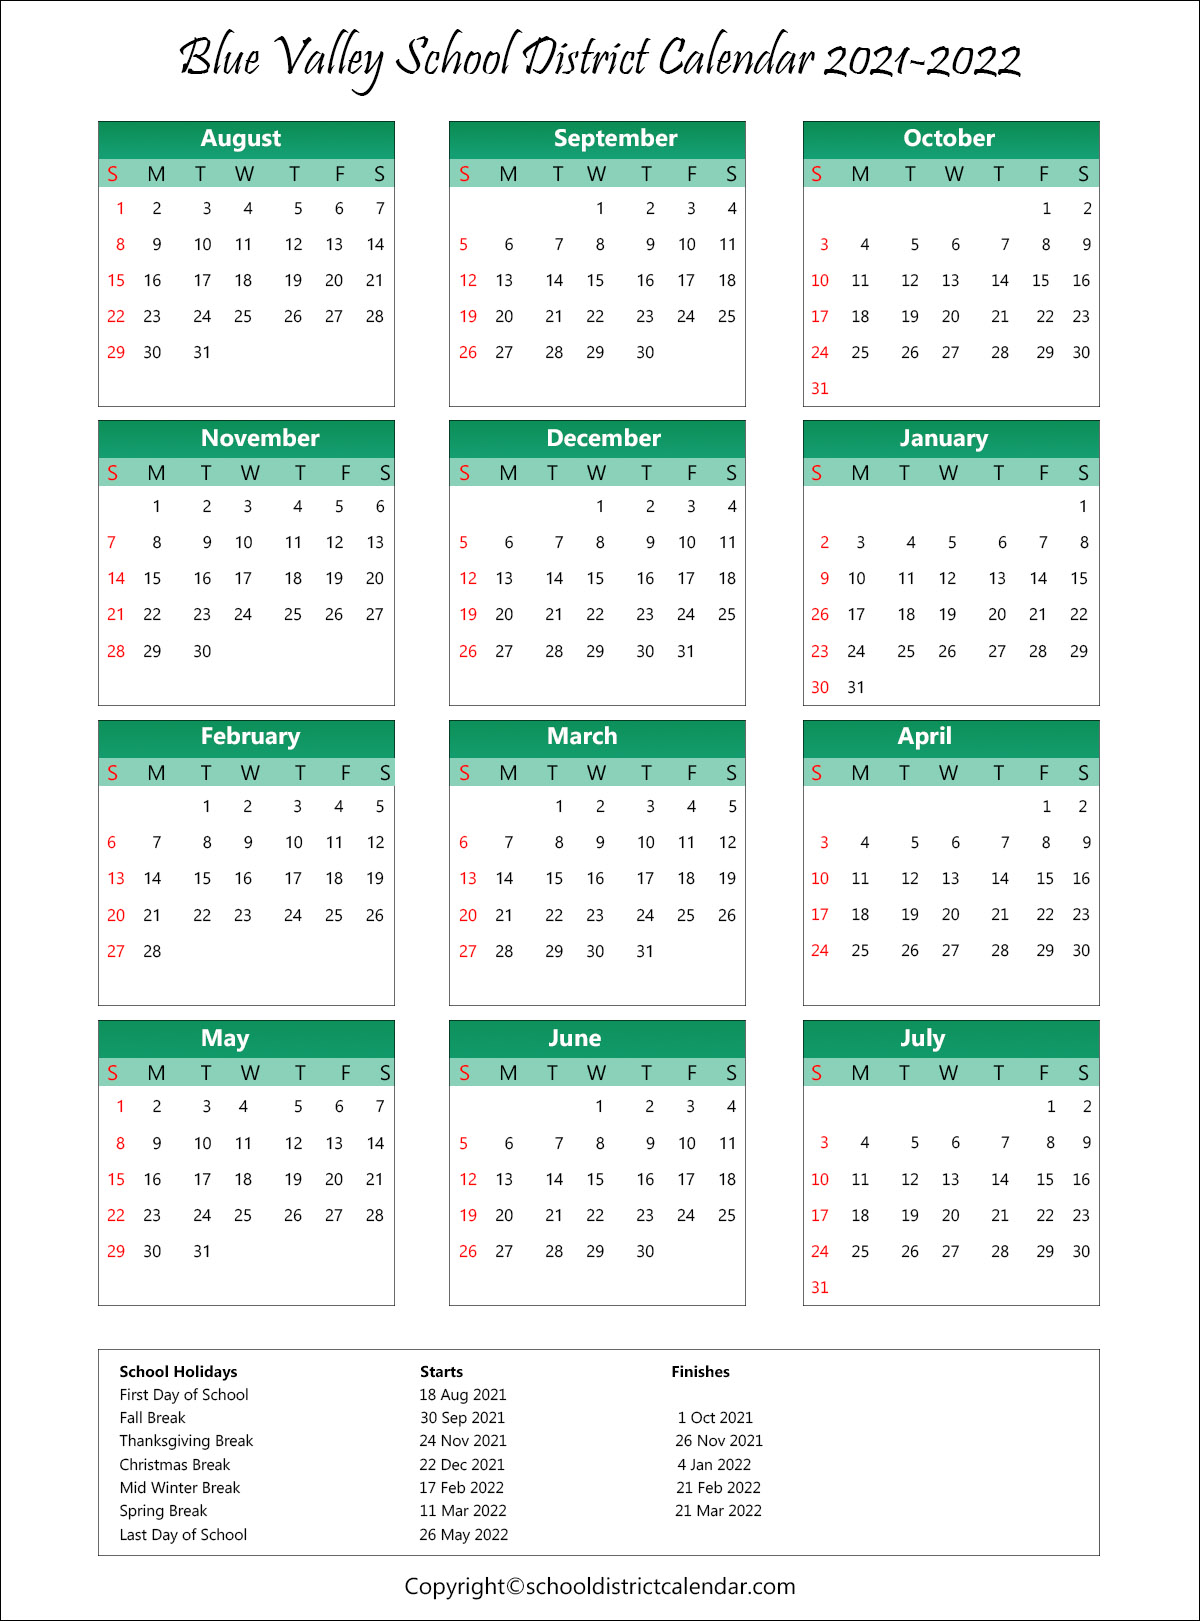 Raytown School District Calendar 2021-2022 Wallpaper